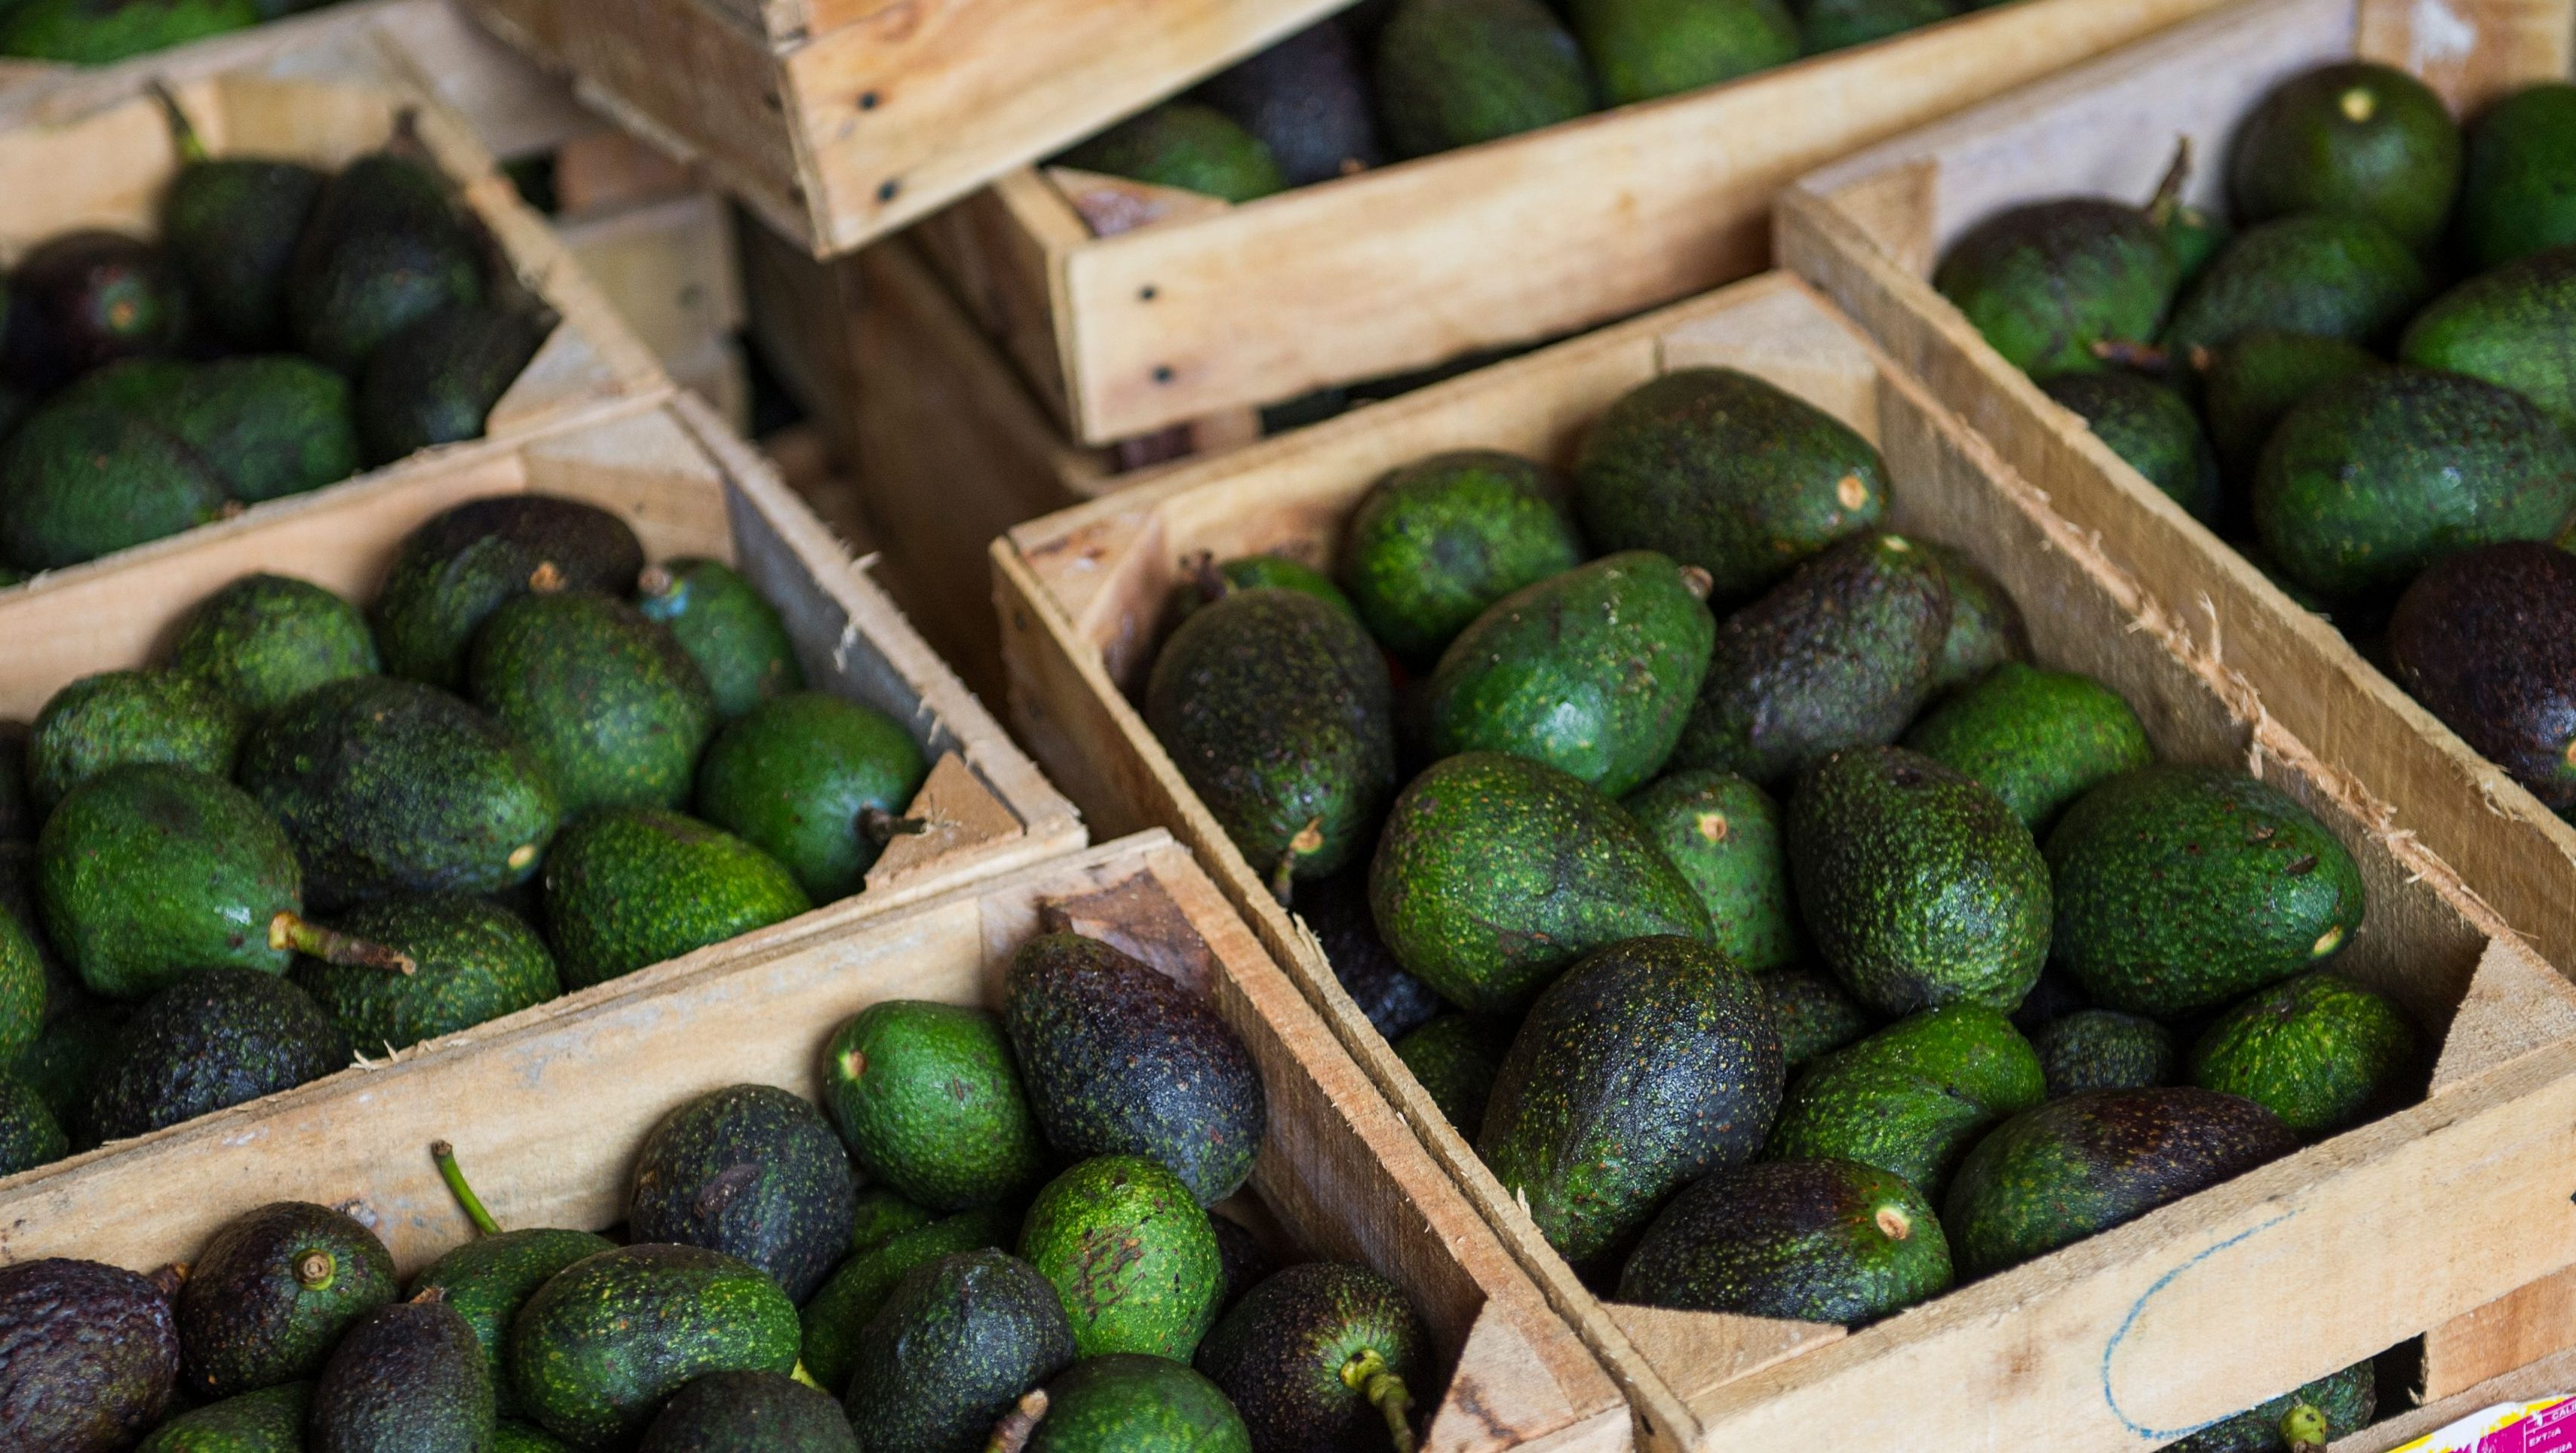 Wooden crates of avocados.